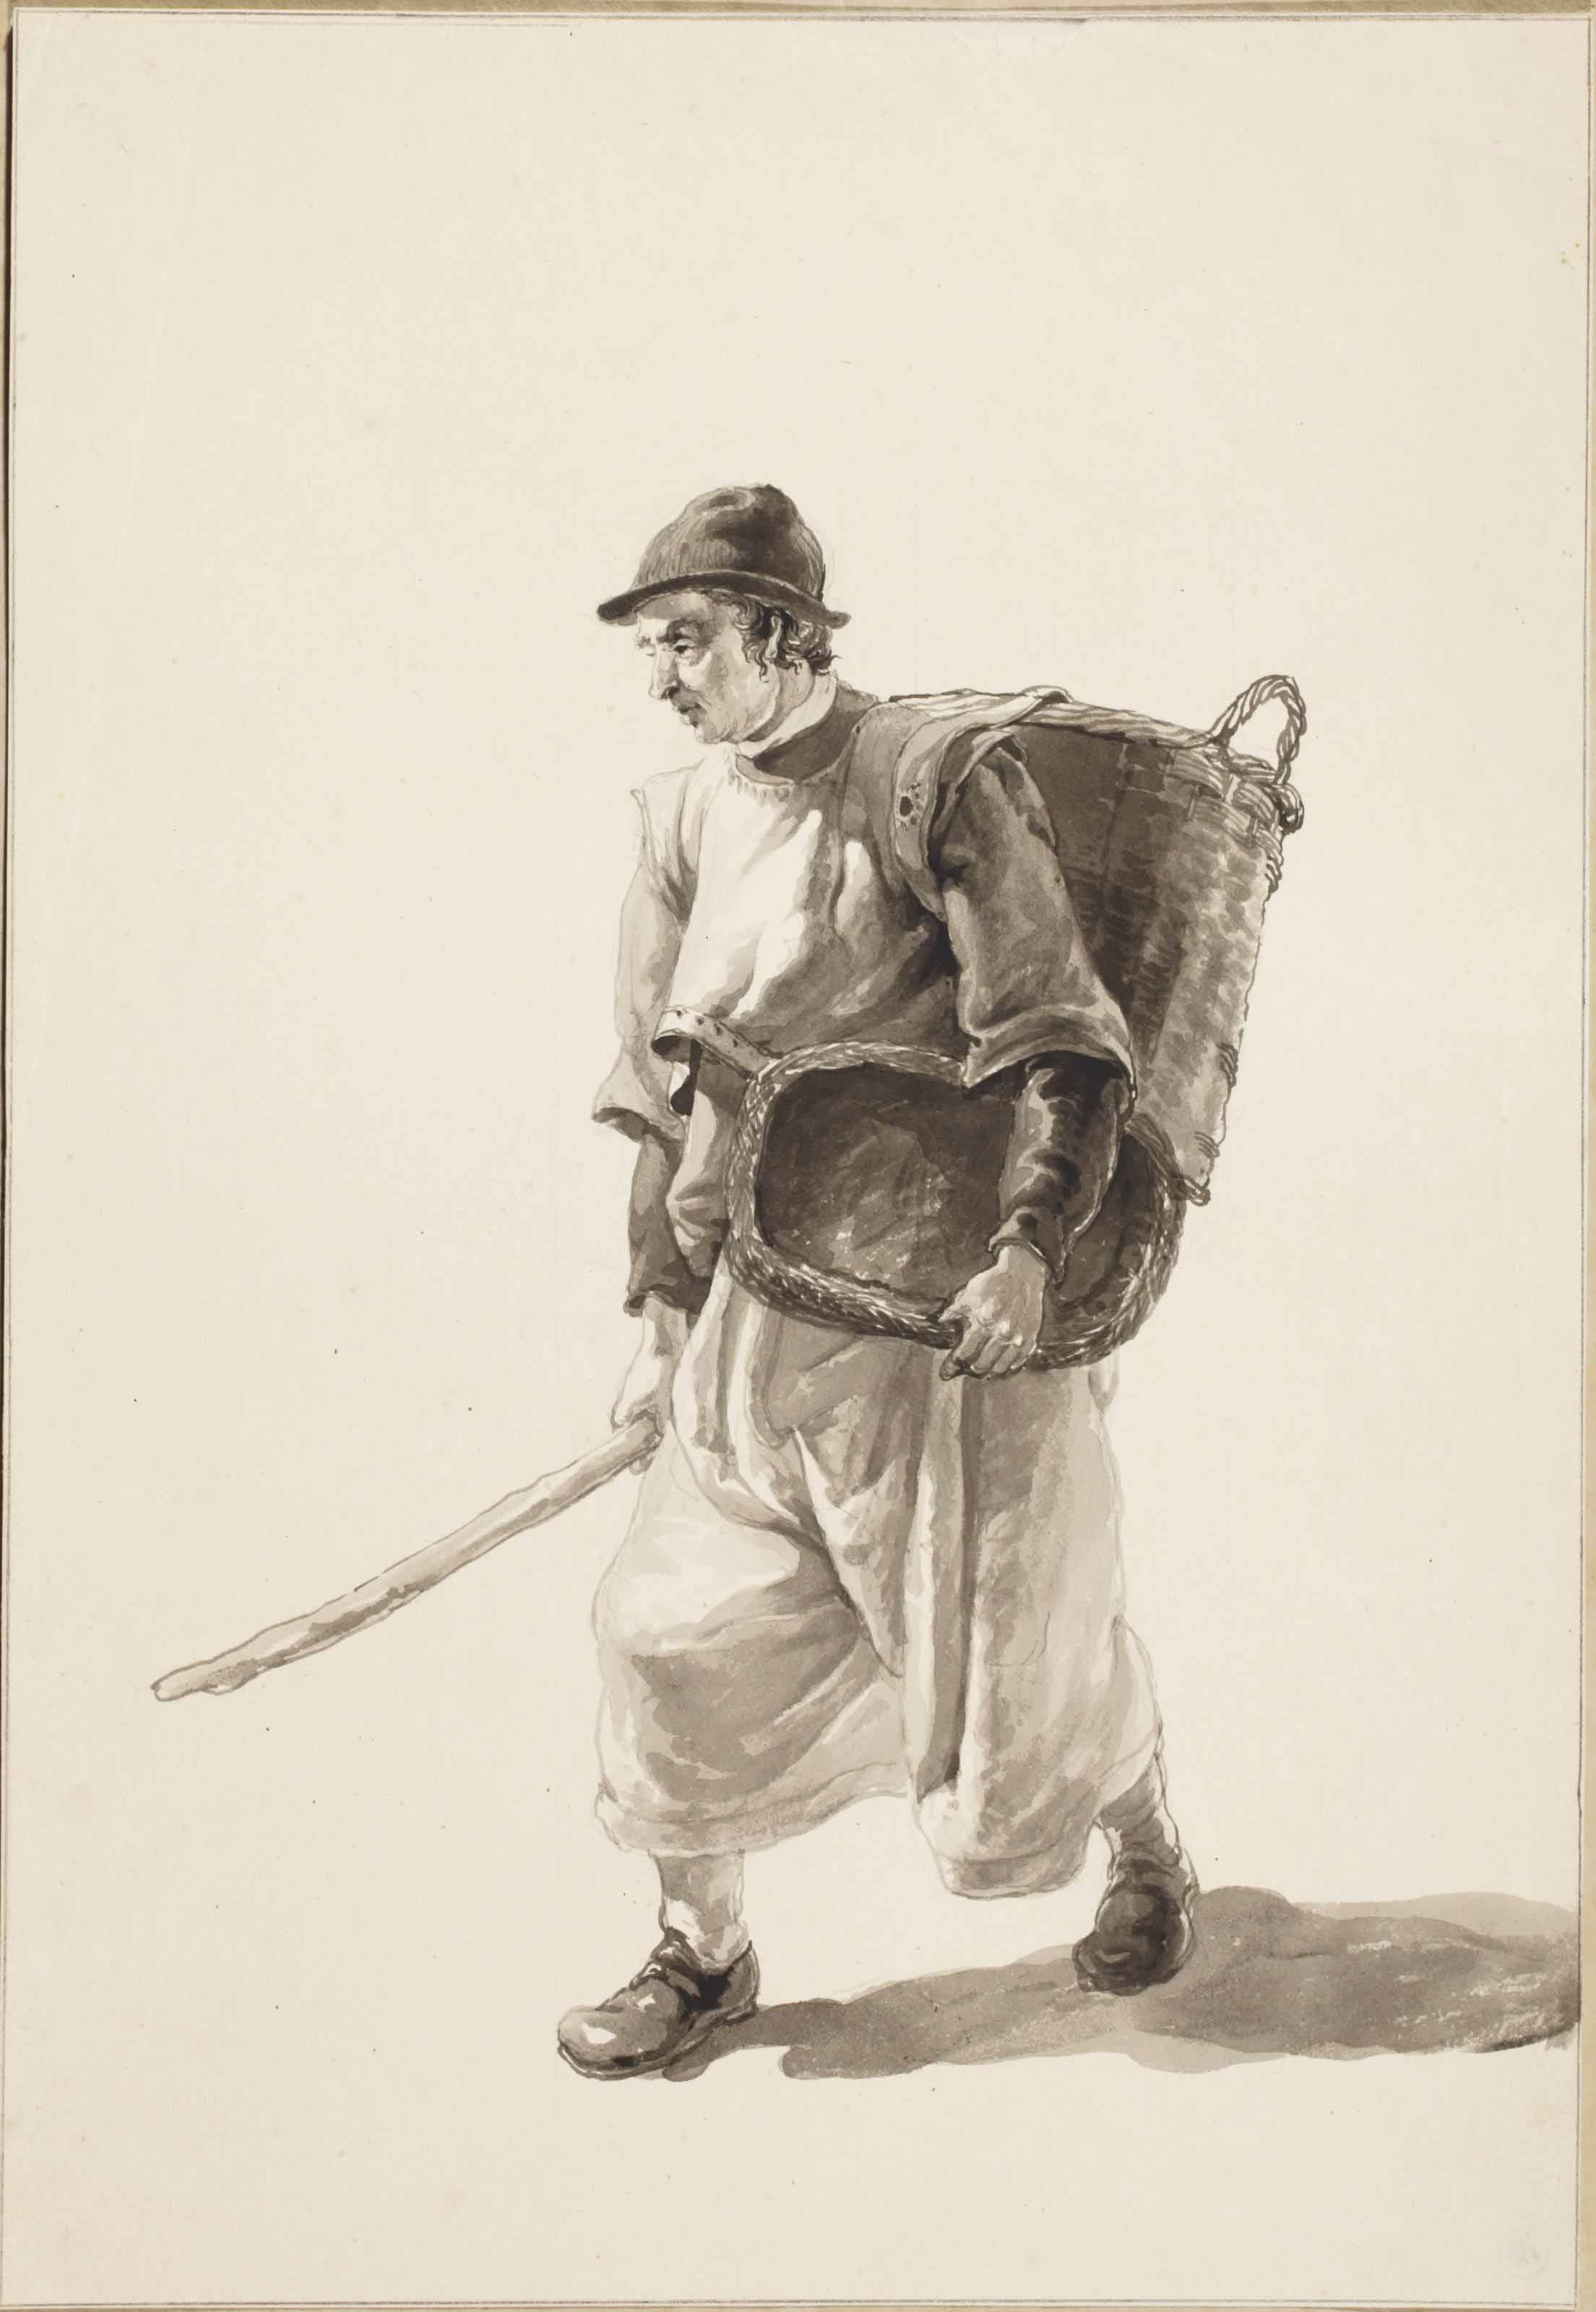 A fisherman carrying two baskets